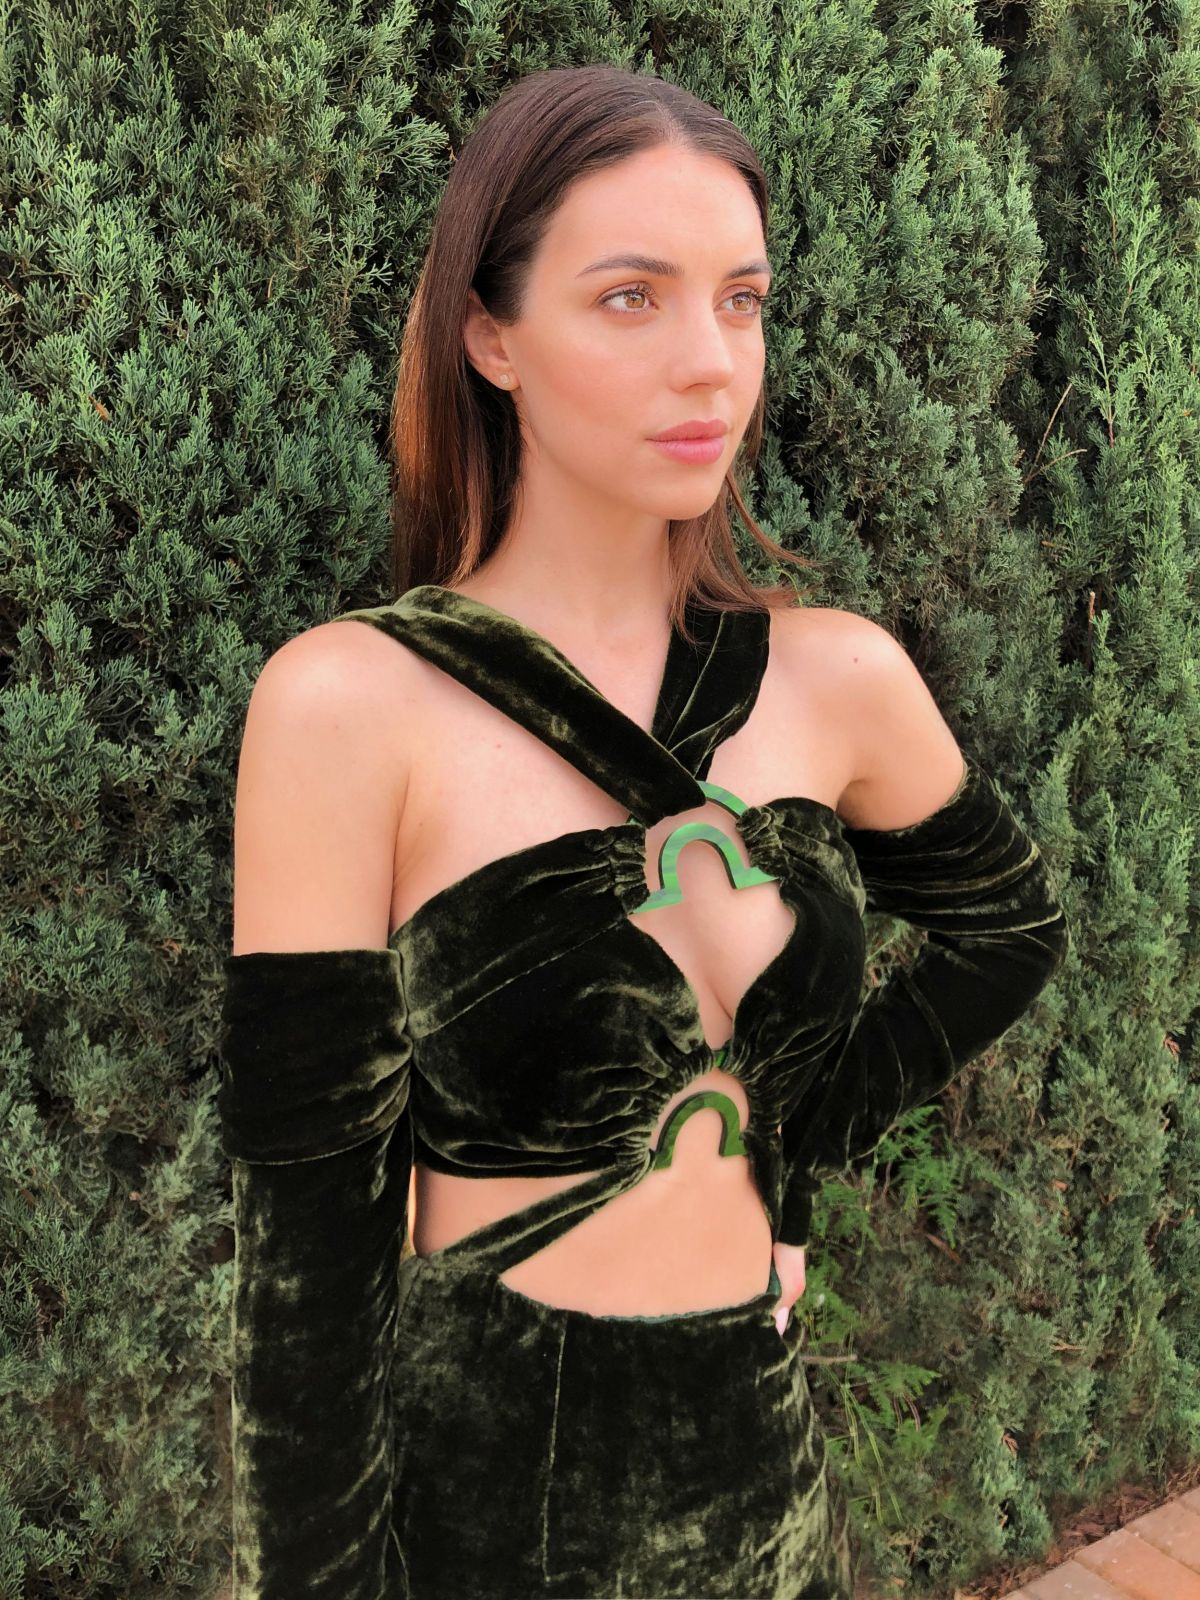 Instagram Adelaide Kane nudes (23 photos), Topless, Paparazzi, Feet, bra 2018